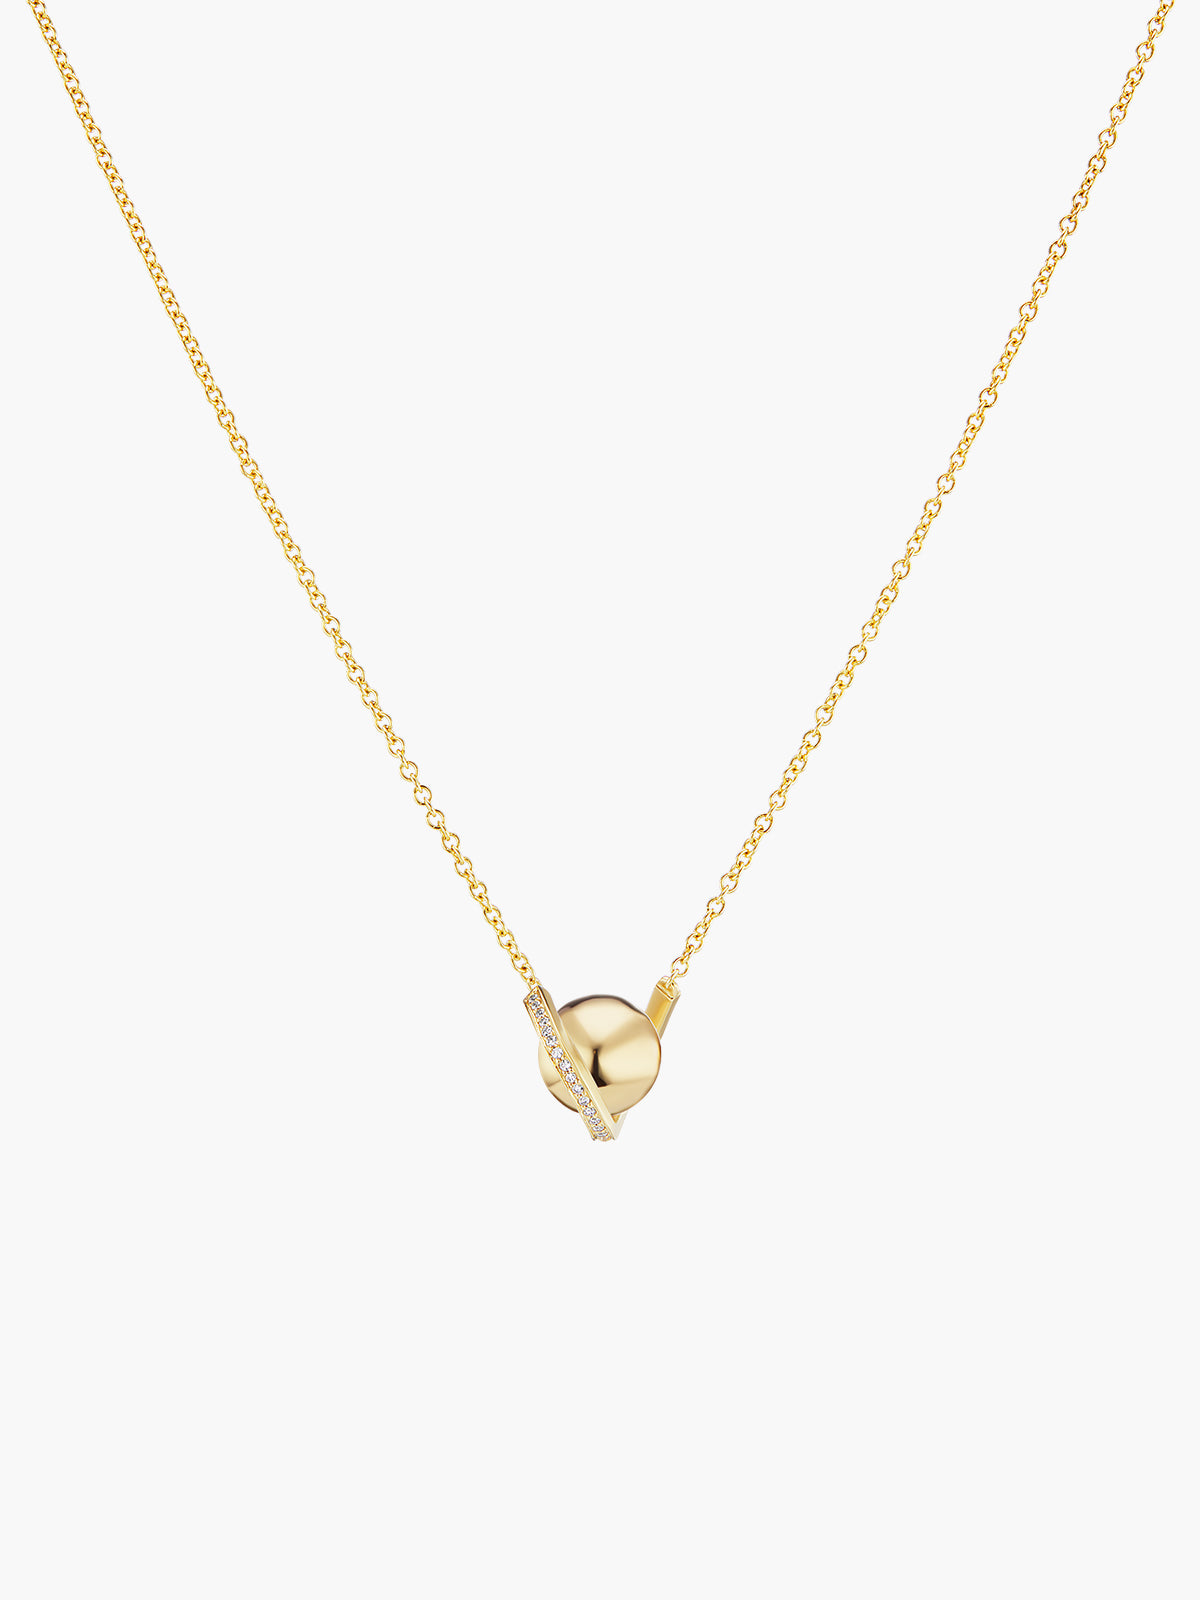 Boule D'Or Solitaire Pendant | High Polish Boule D'Or Solitaire Pendant | High Polish